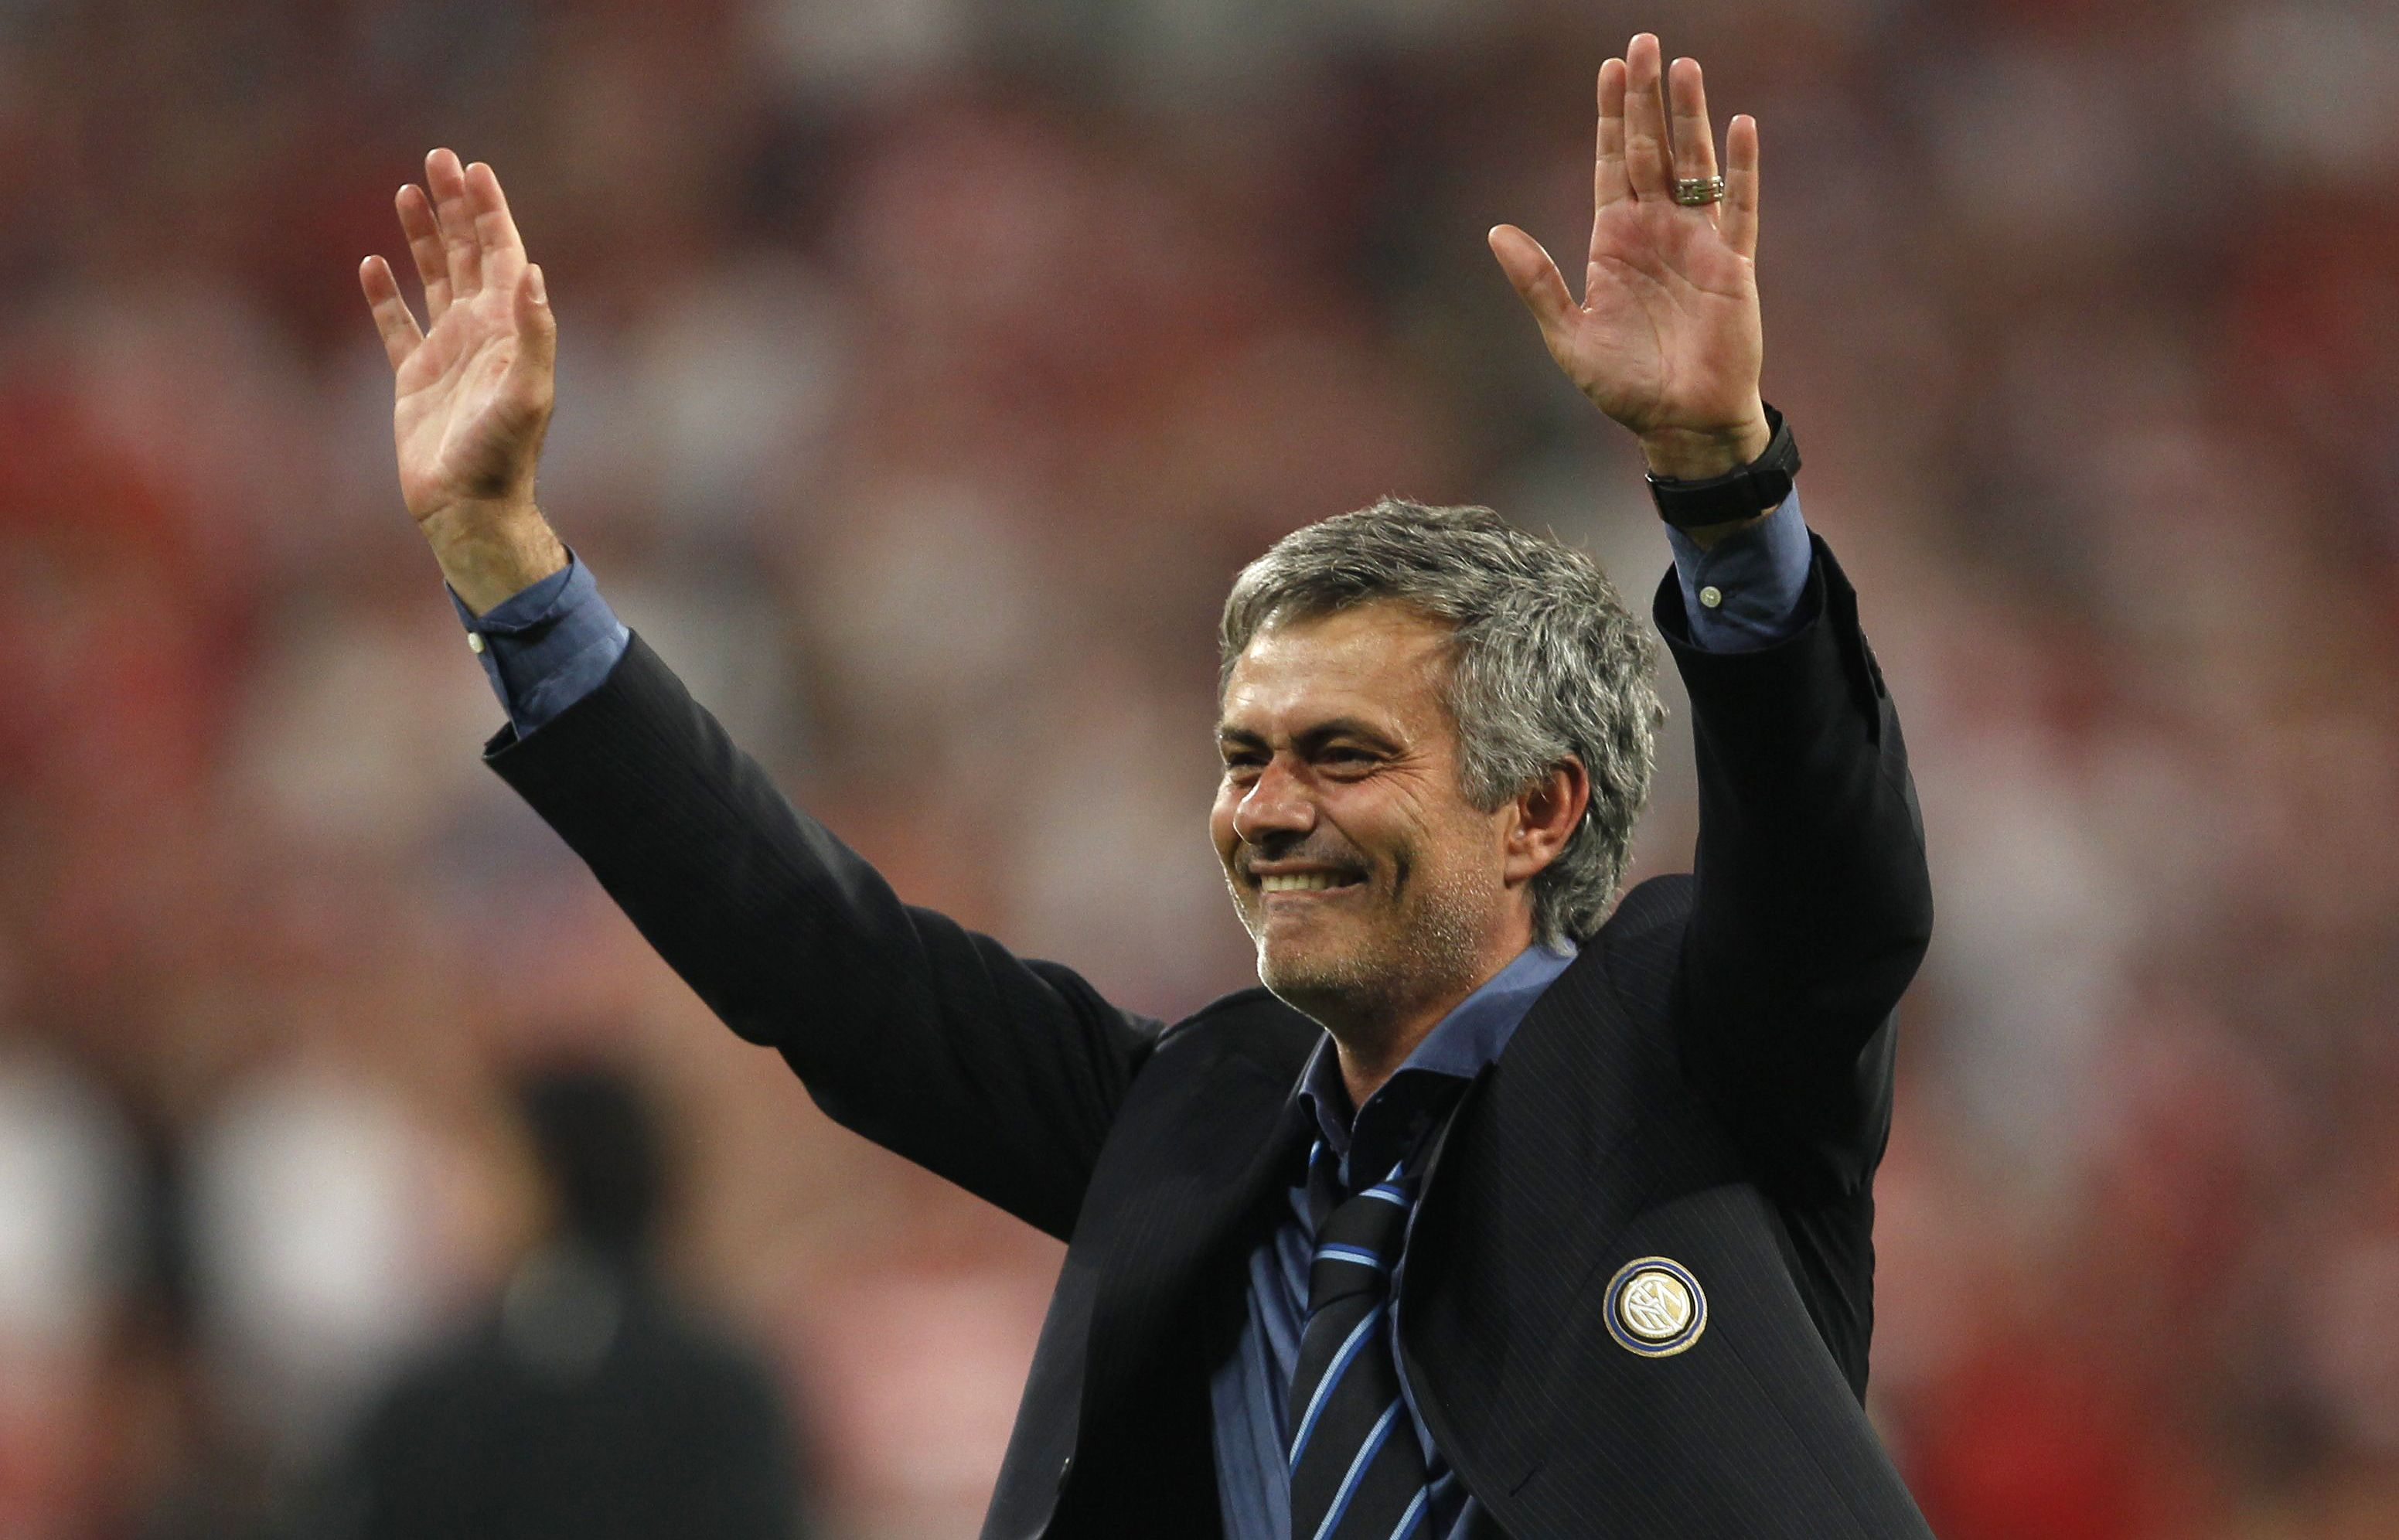 Inter Milan's manager Mourinho celebrates after their Champions League final soccer match victory  against Bayern Munich in Madrid